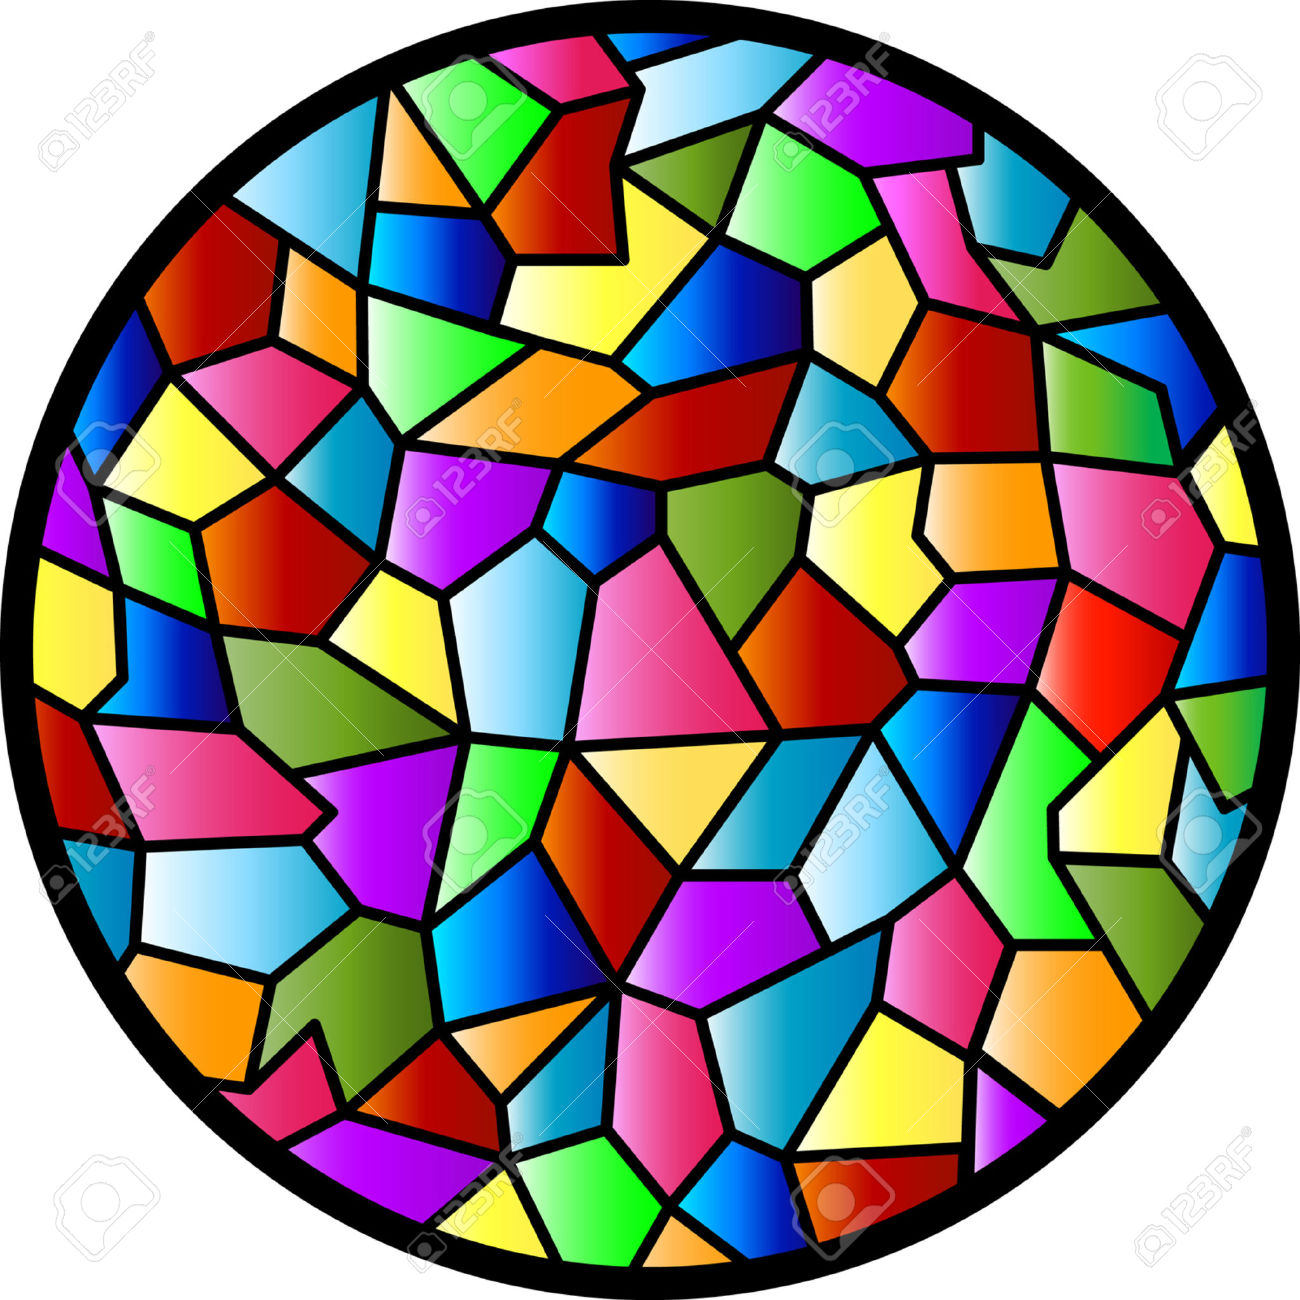 Free Military Stained Glass Patterns